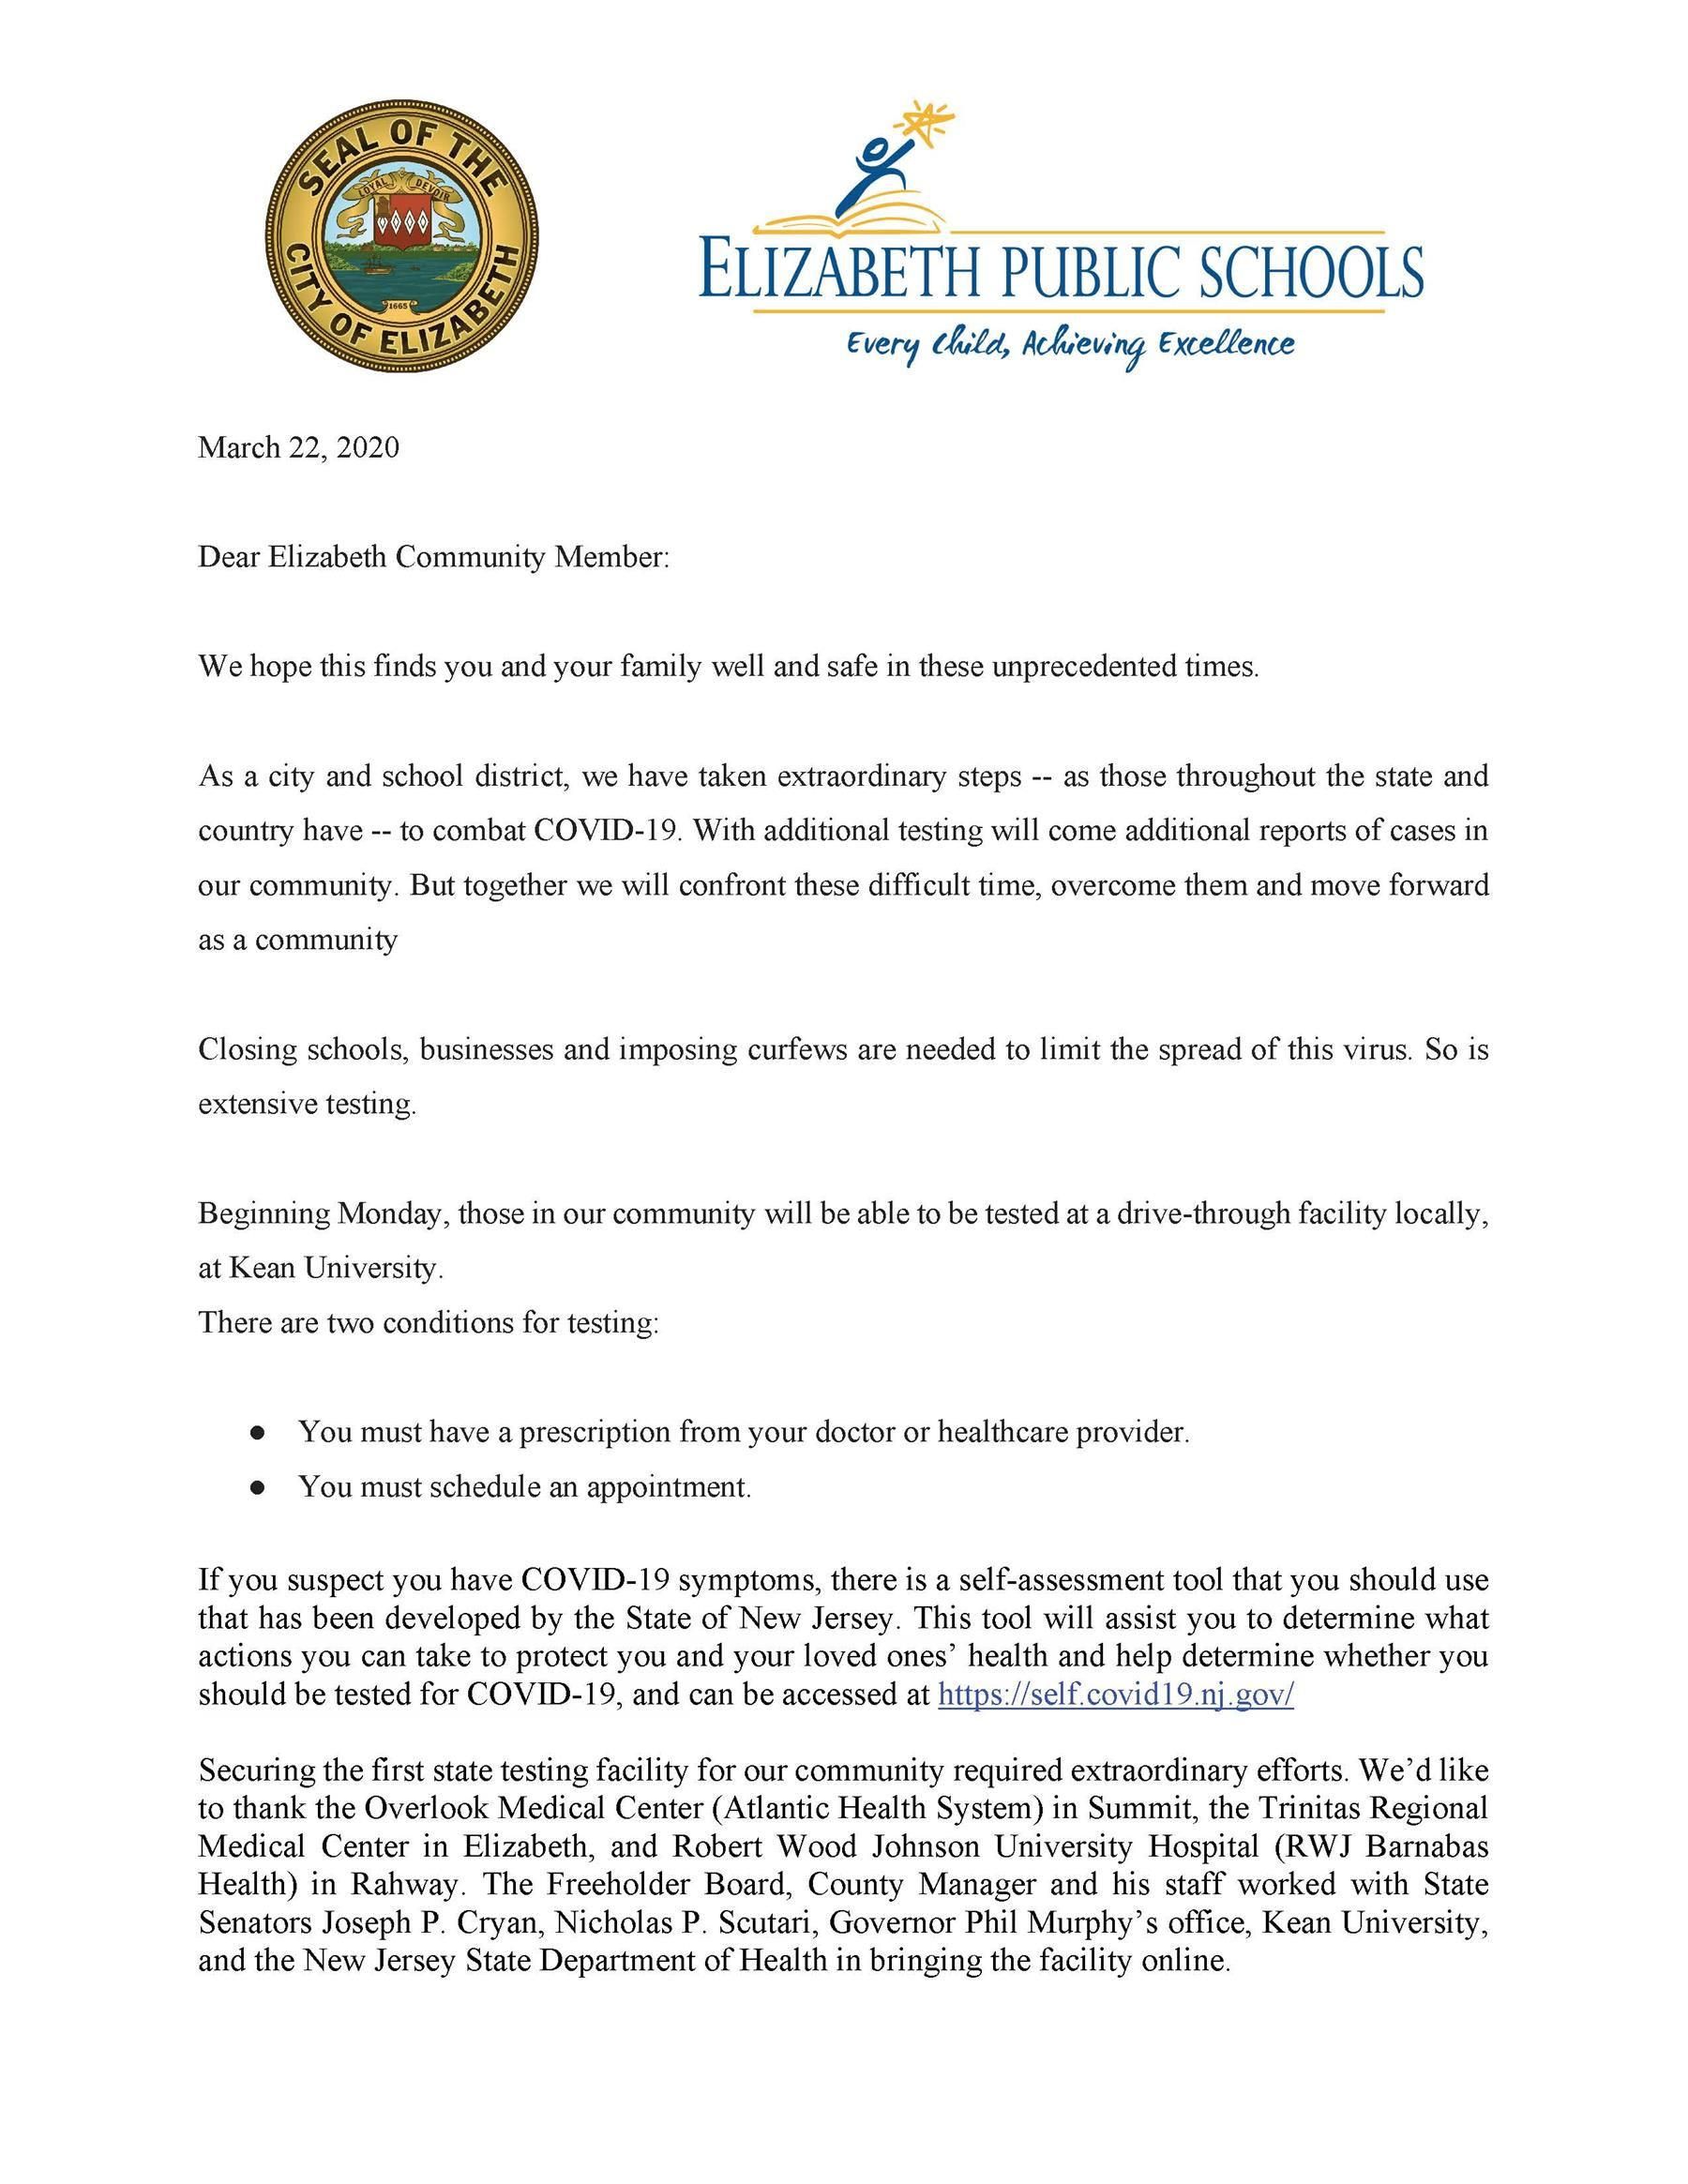 Joint Statement from Mayor and Superintendent Regarding Kean Testing Facility 3/22/20 (Español, Português, Kreyòl Ayisyen, عربى)